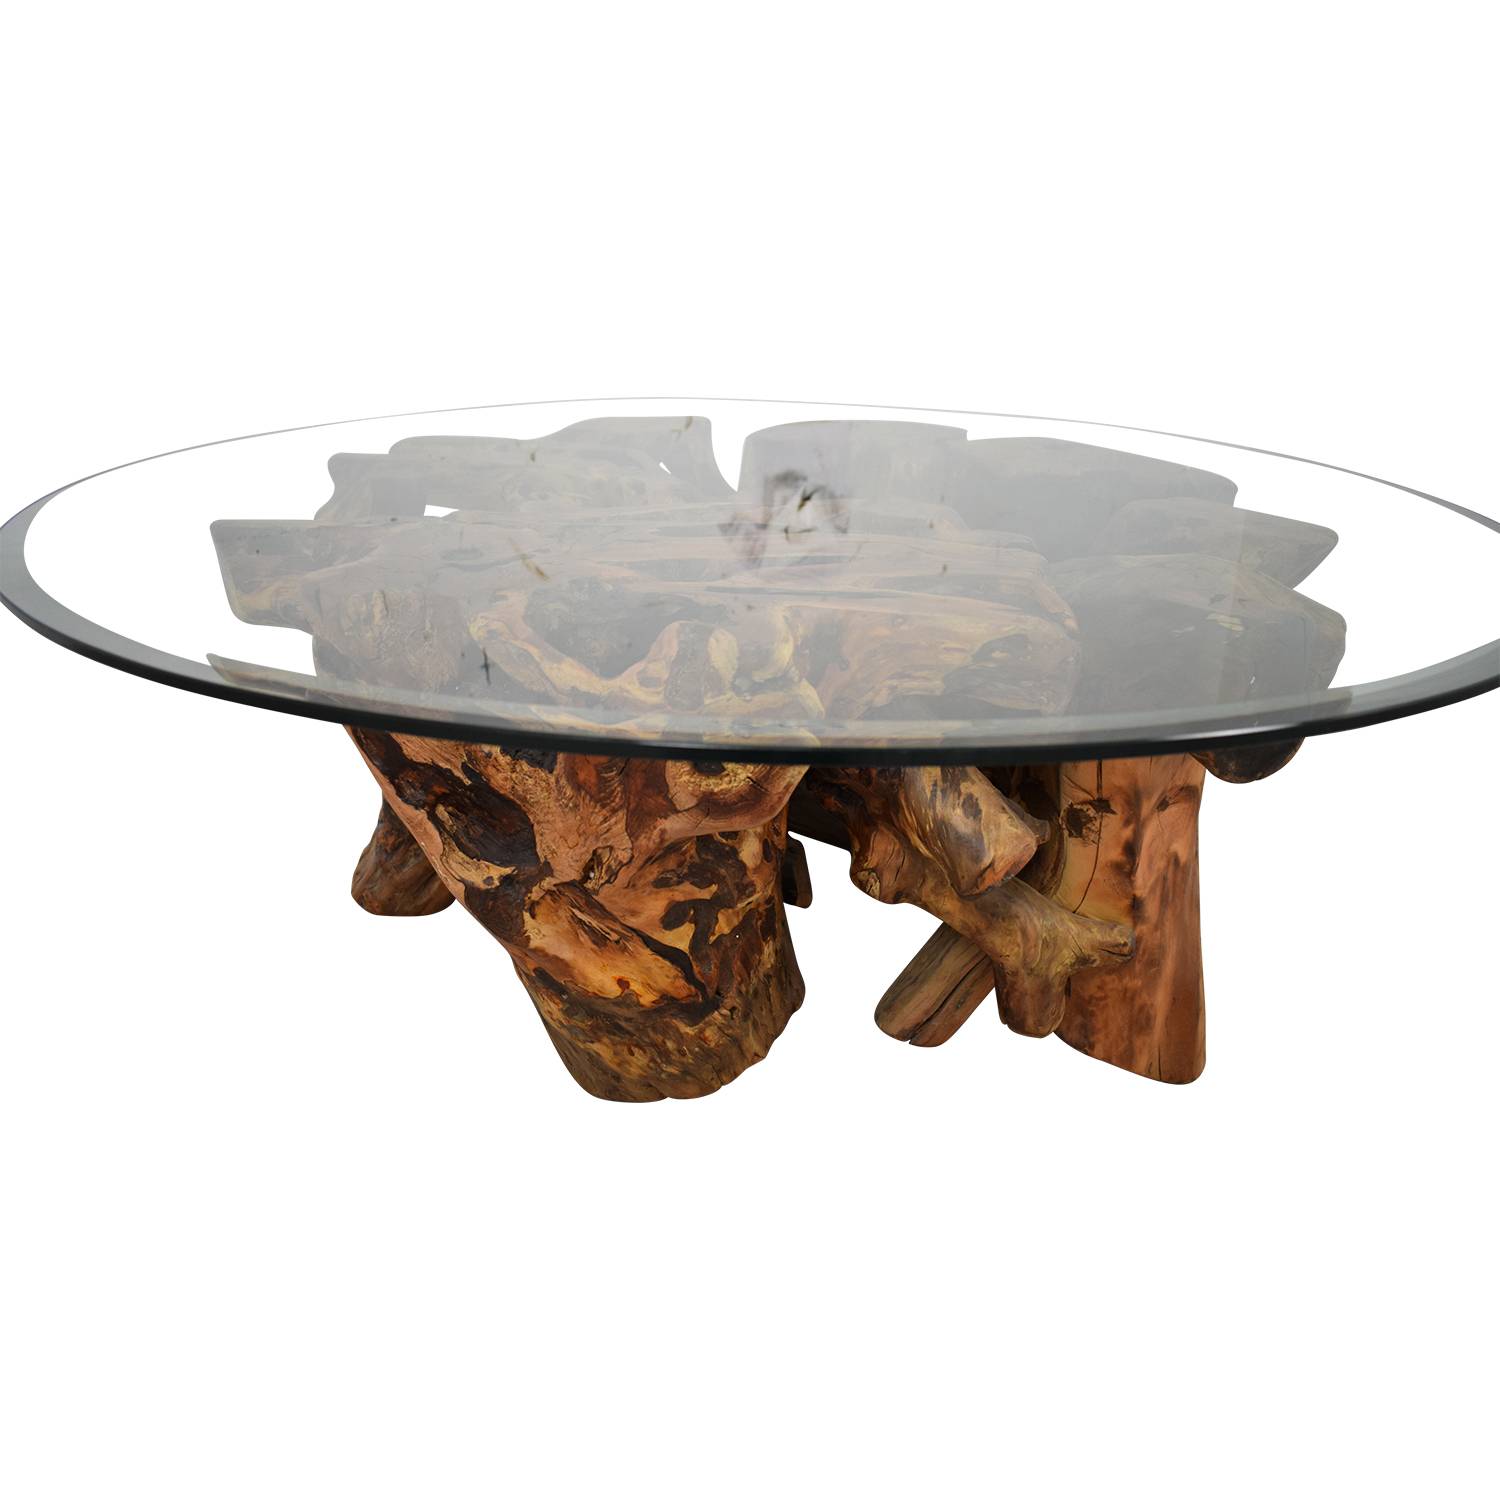 Control Brand Control Brand Wooden Tree Trunk Coffee Table on sale